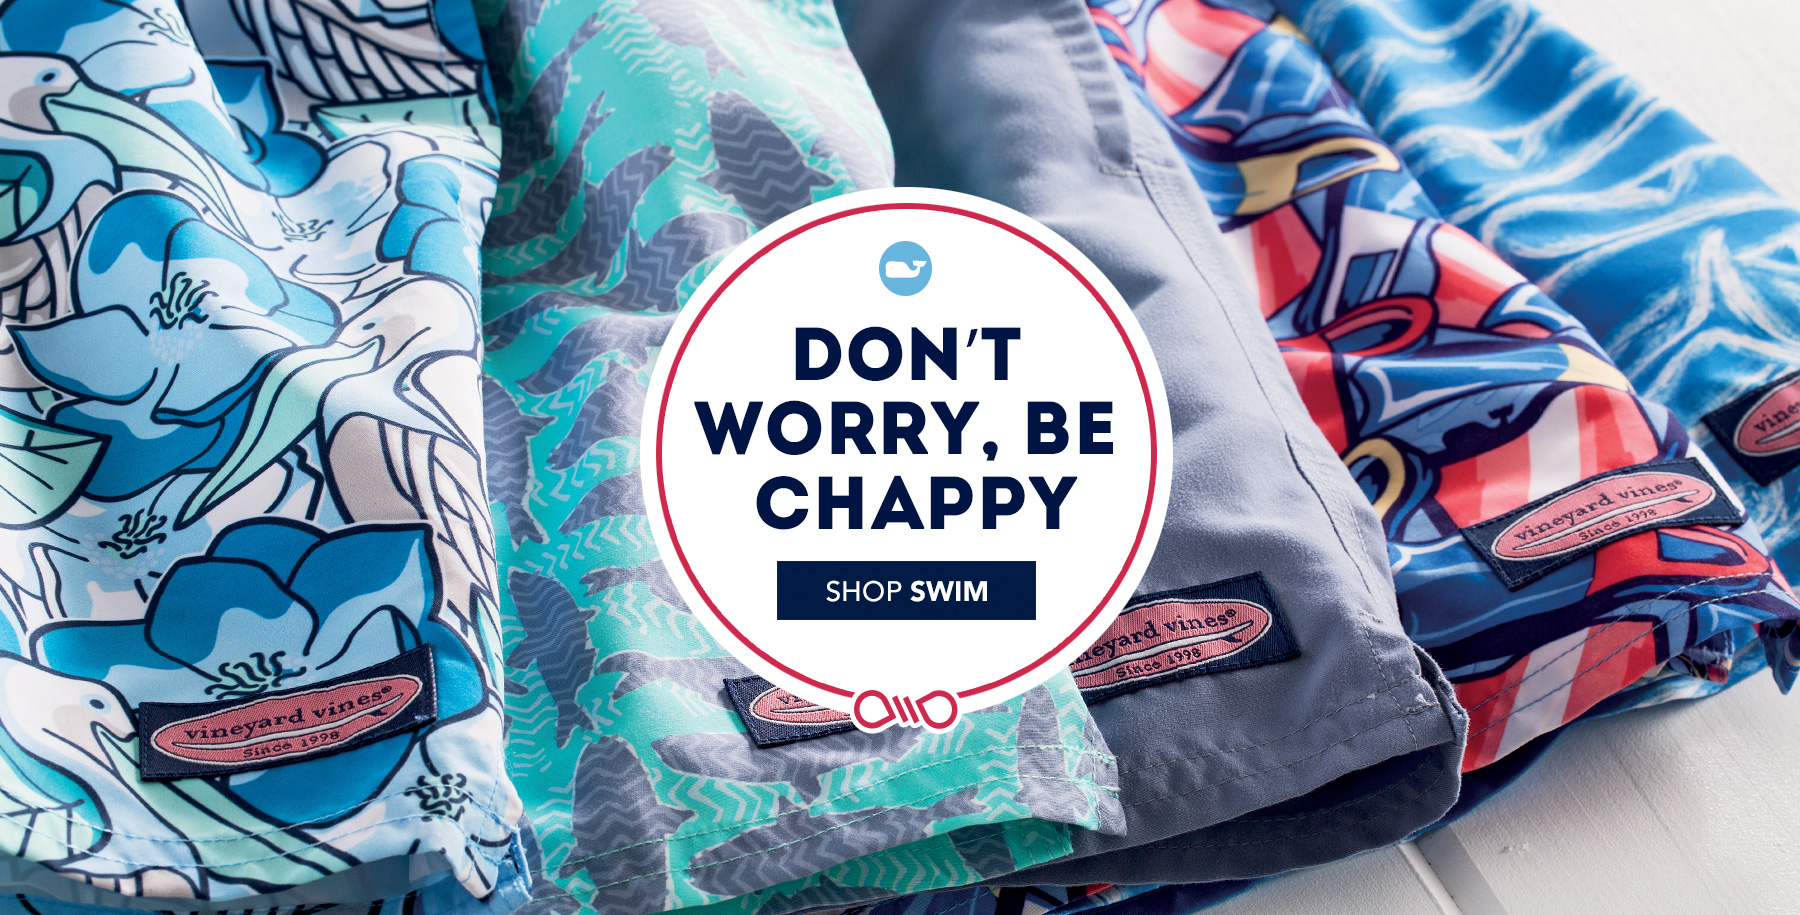 Don't worry, be chappy. Shop Swim.